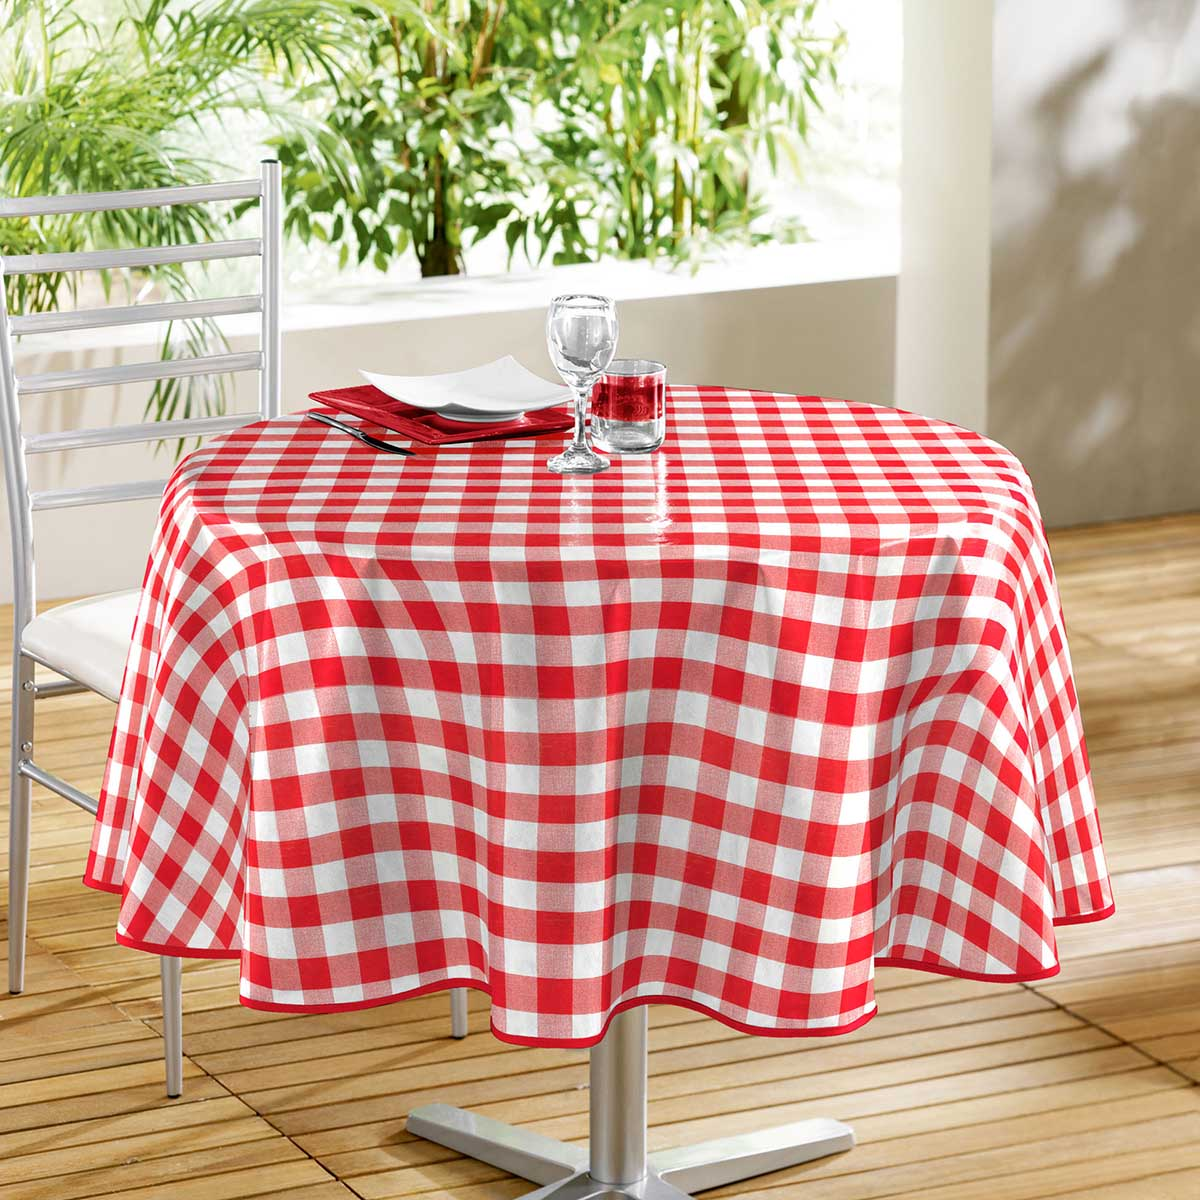 nappe de table ronde 160cm vichy rouge en toile cir e rouge blanc 160cm ebay. Black Bedroom Furniture Sets. Home Design Ideas